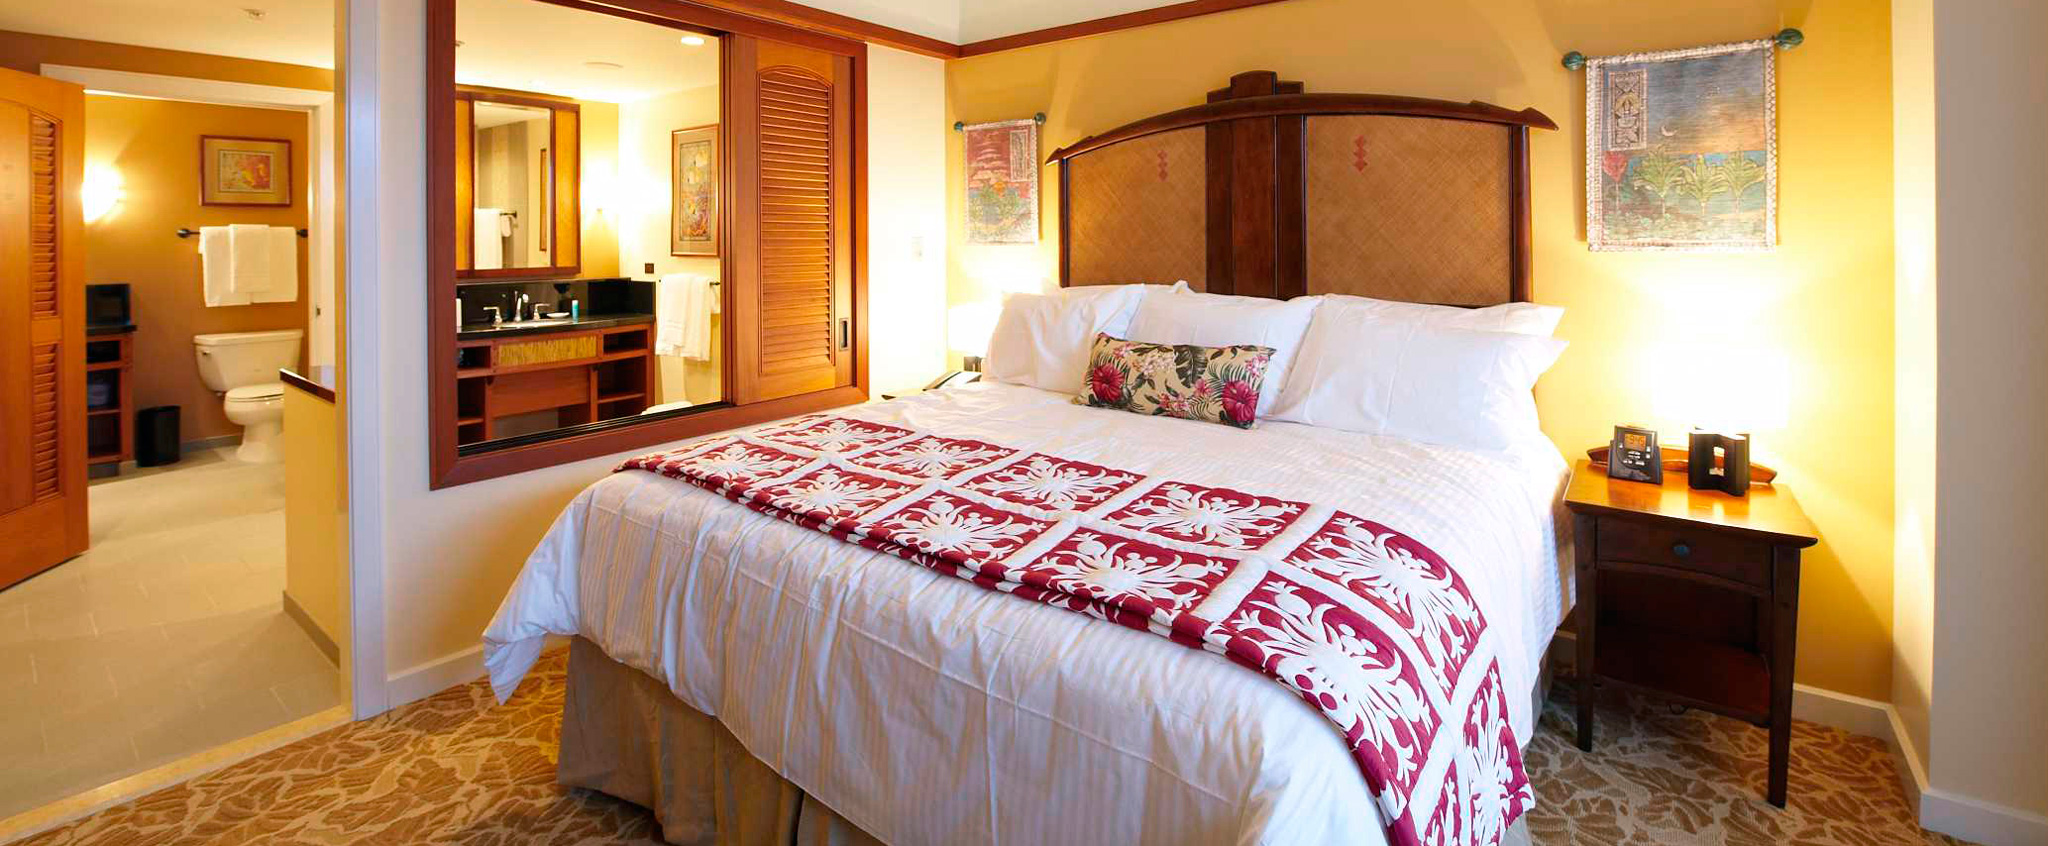 The 1-Bedroom Villa features crisp linens, warm wood accents and a large bathroom